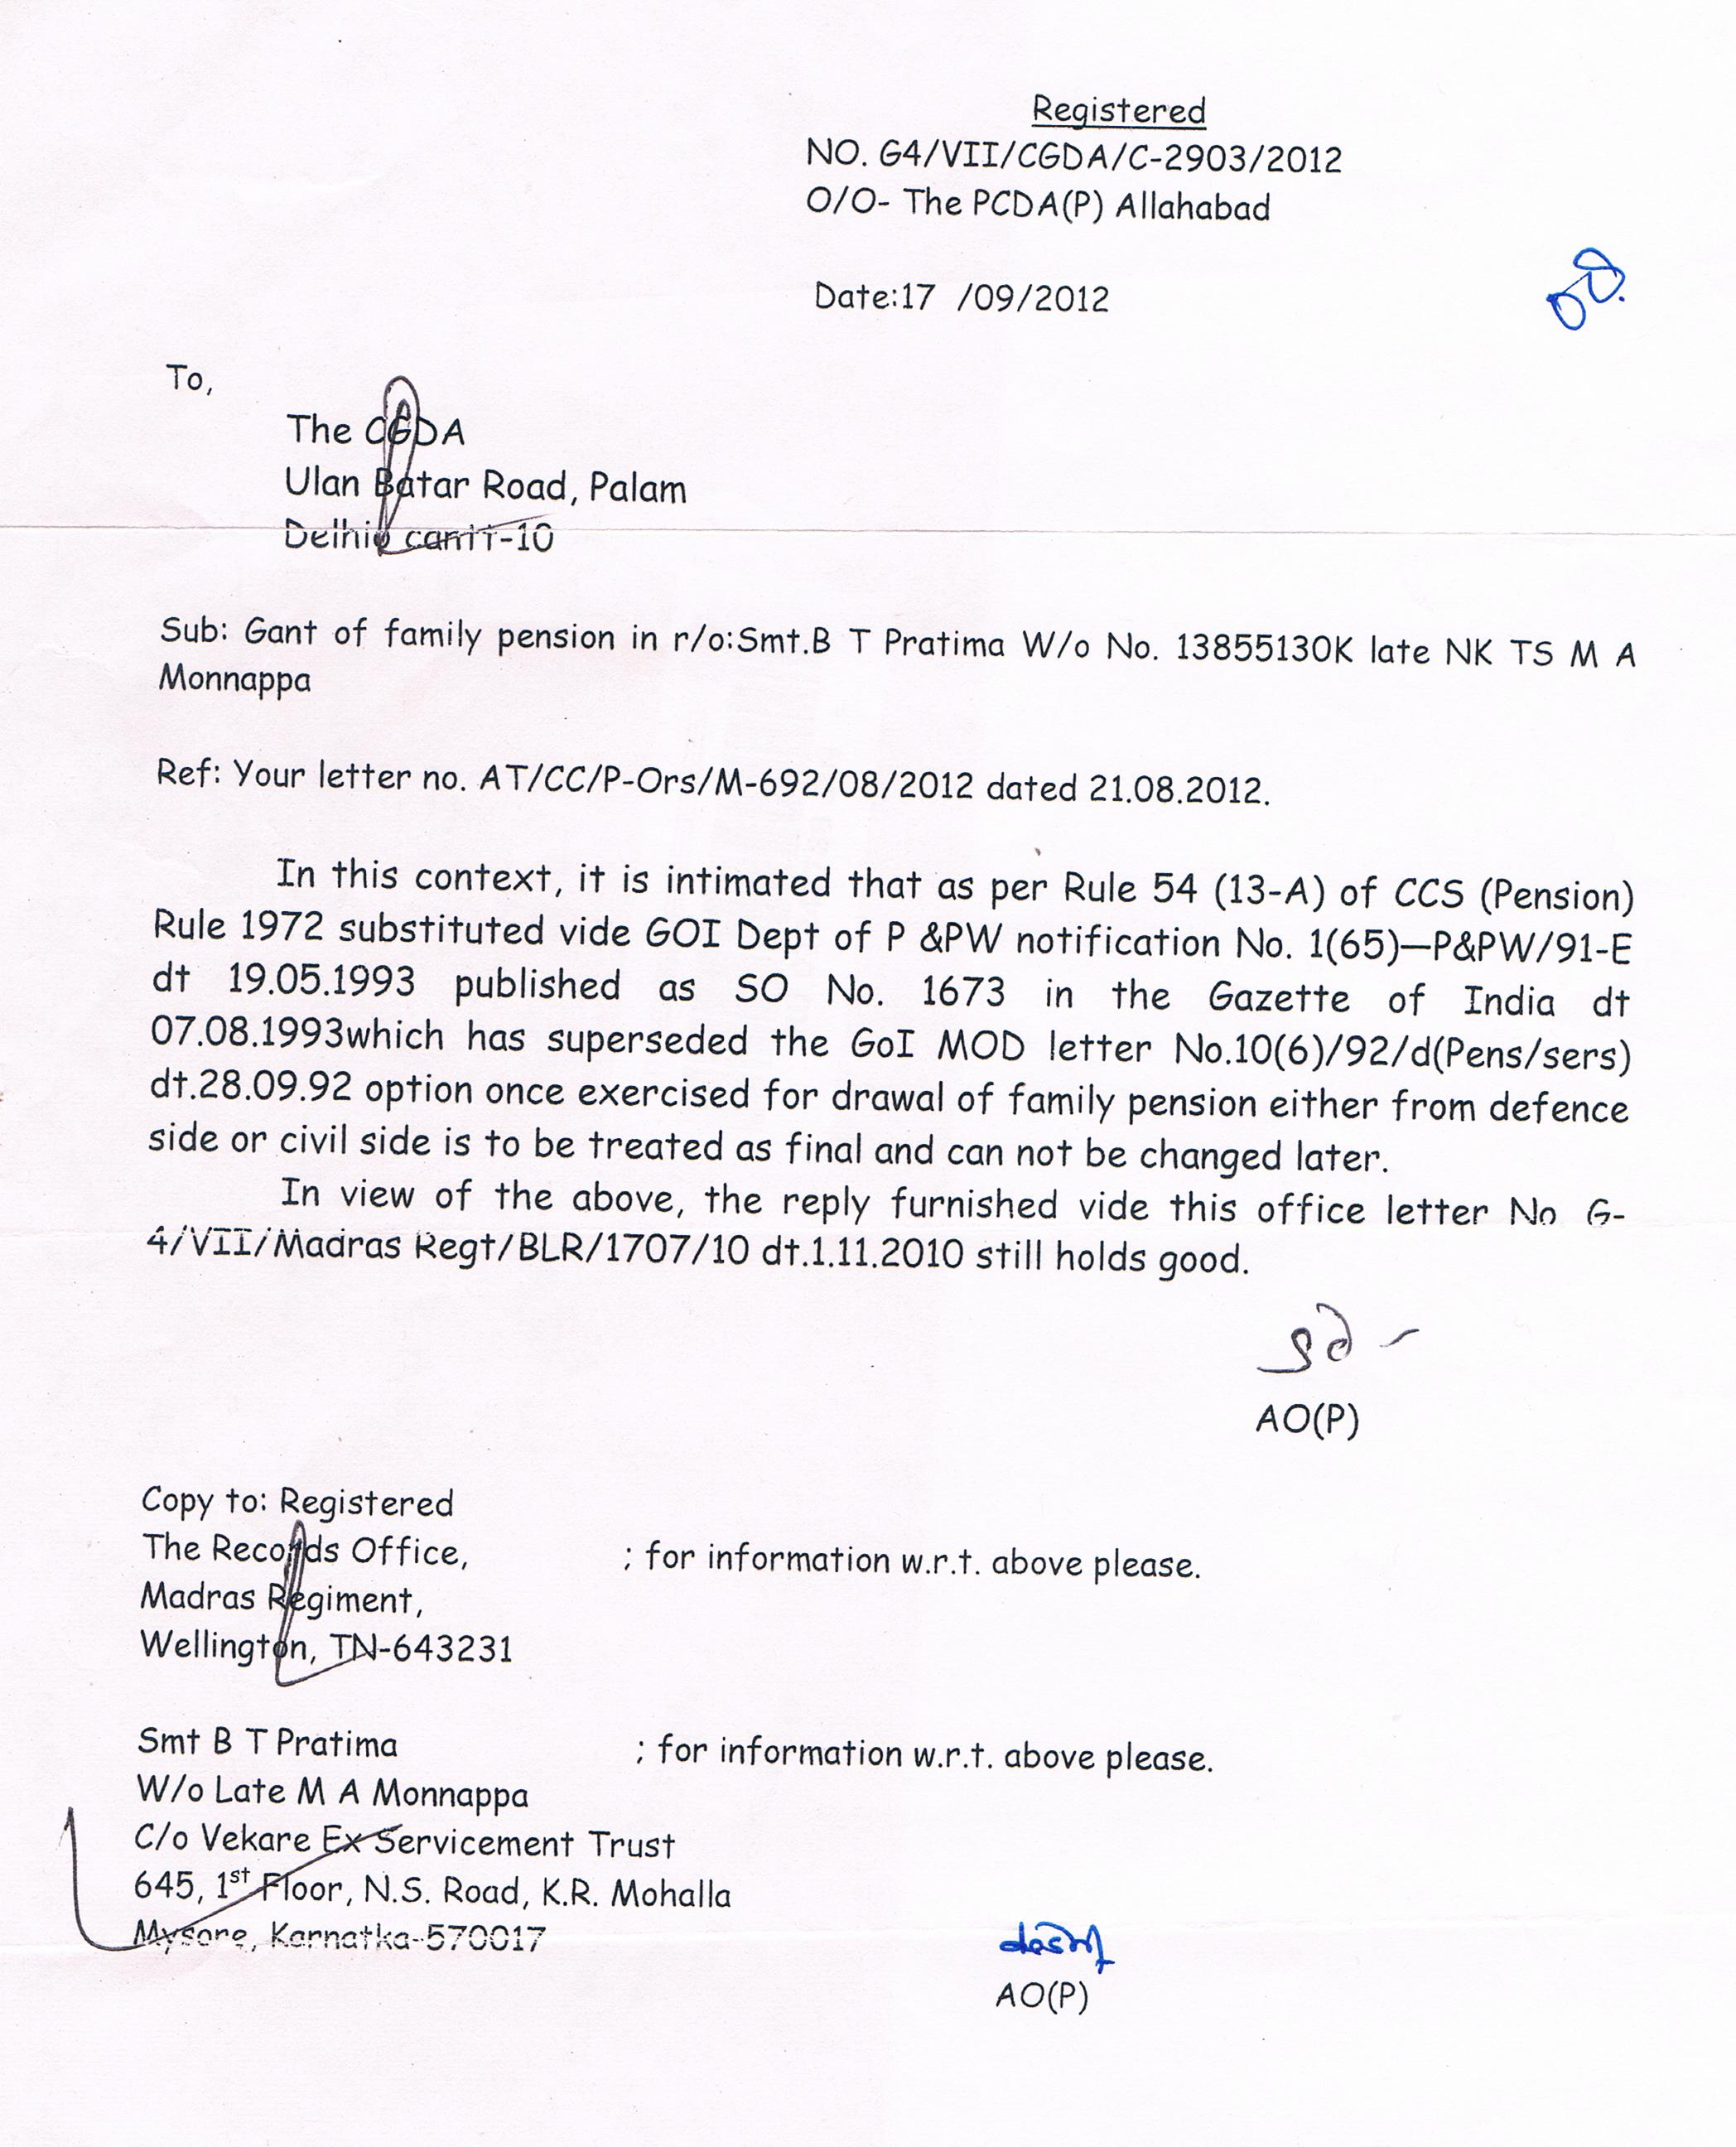 006 PCDA Reply Ltr 17.09.2012